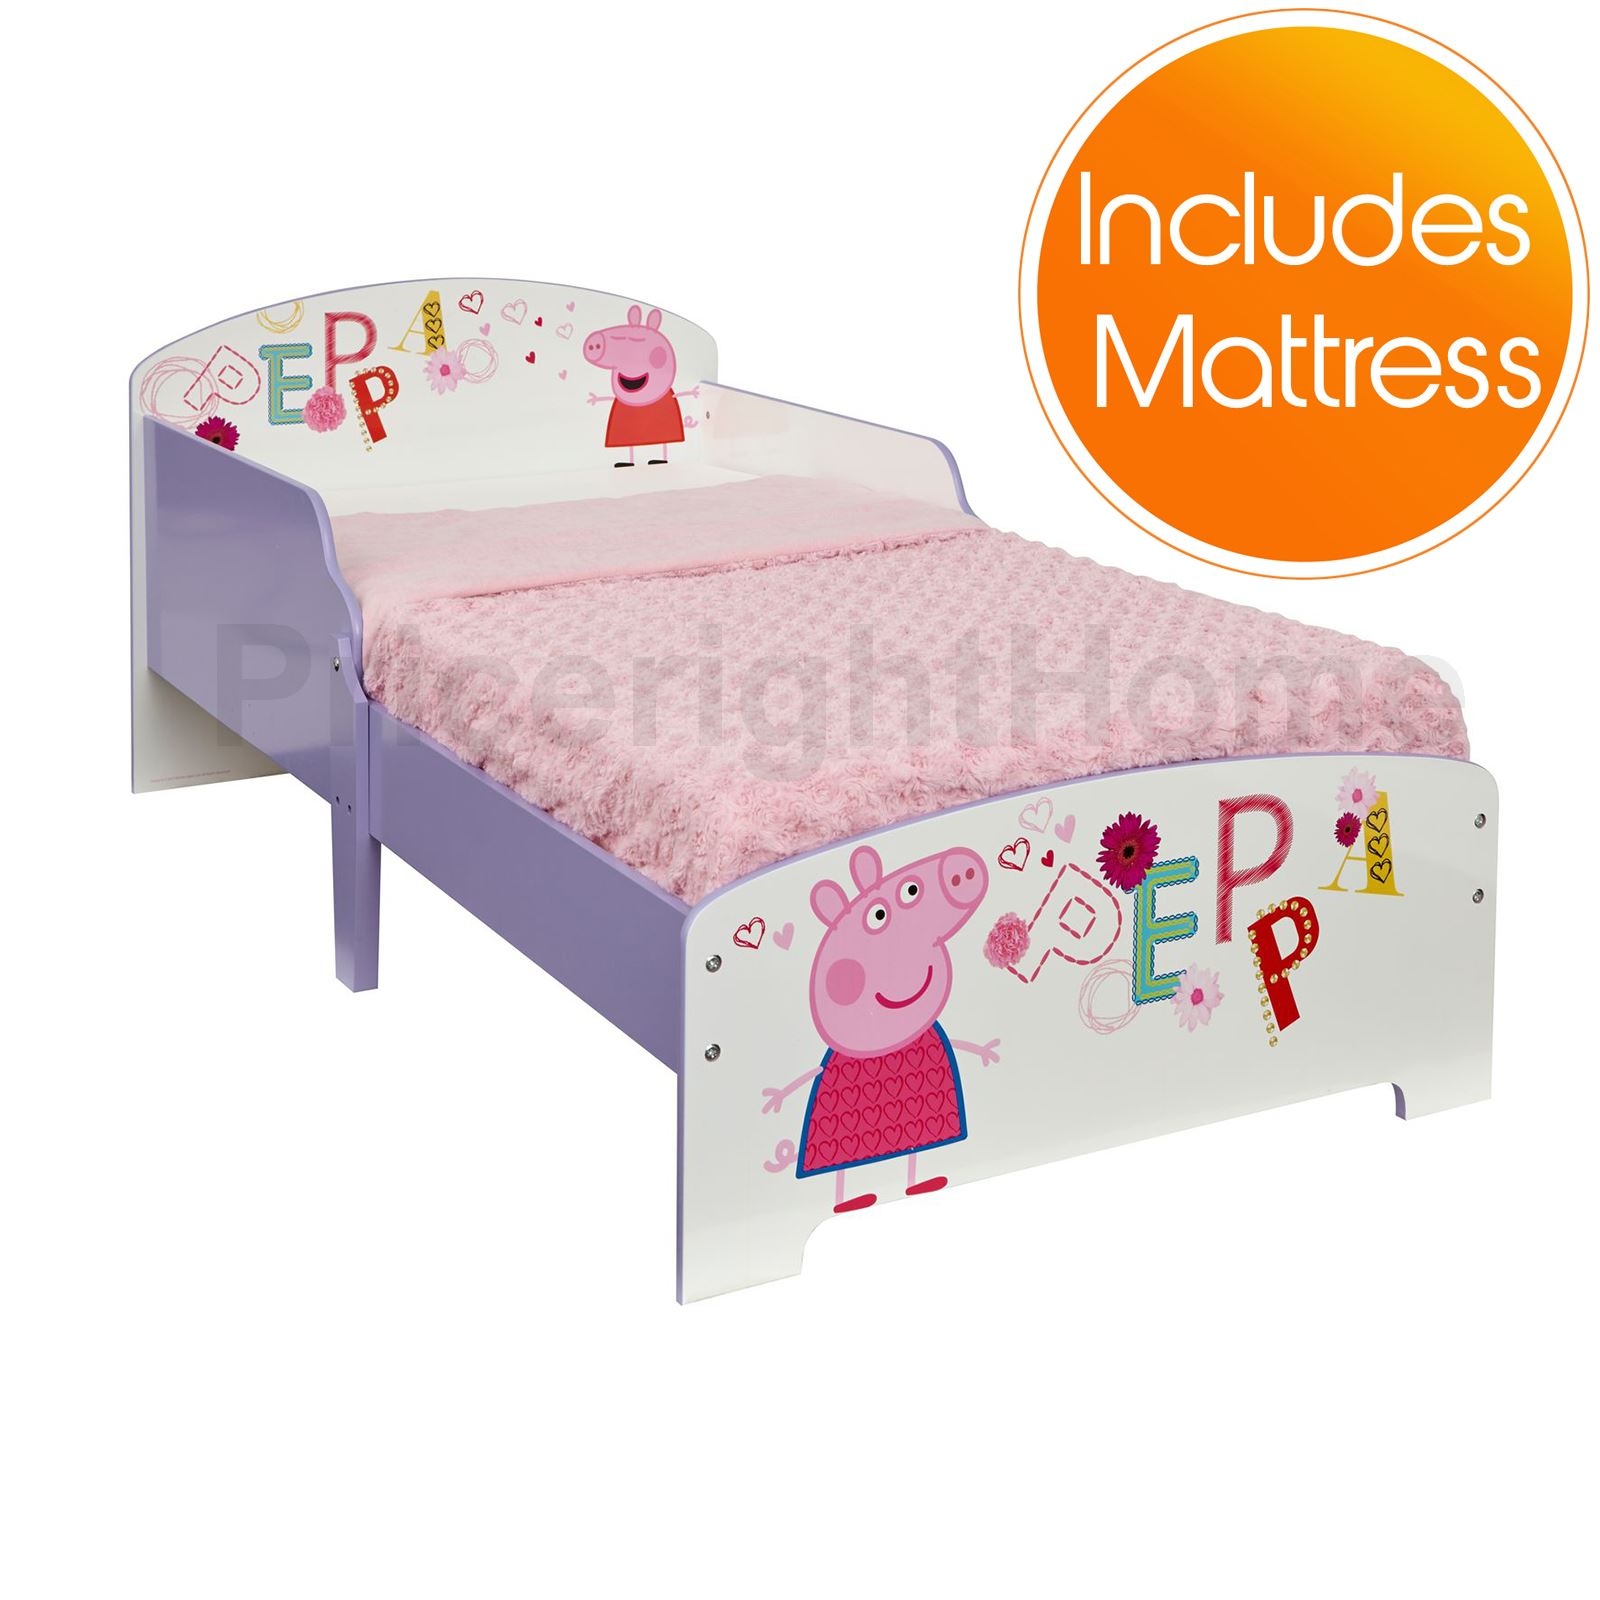 Toddler bed with mattress included 28 images cheap for Cheap beds with mattresses included